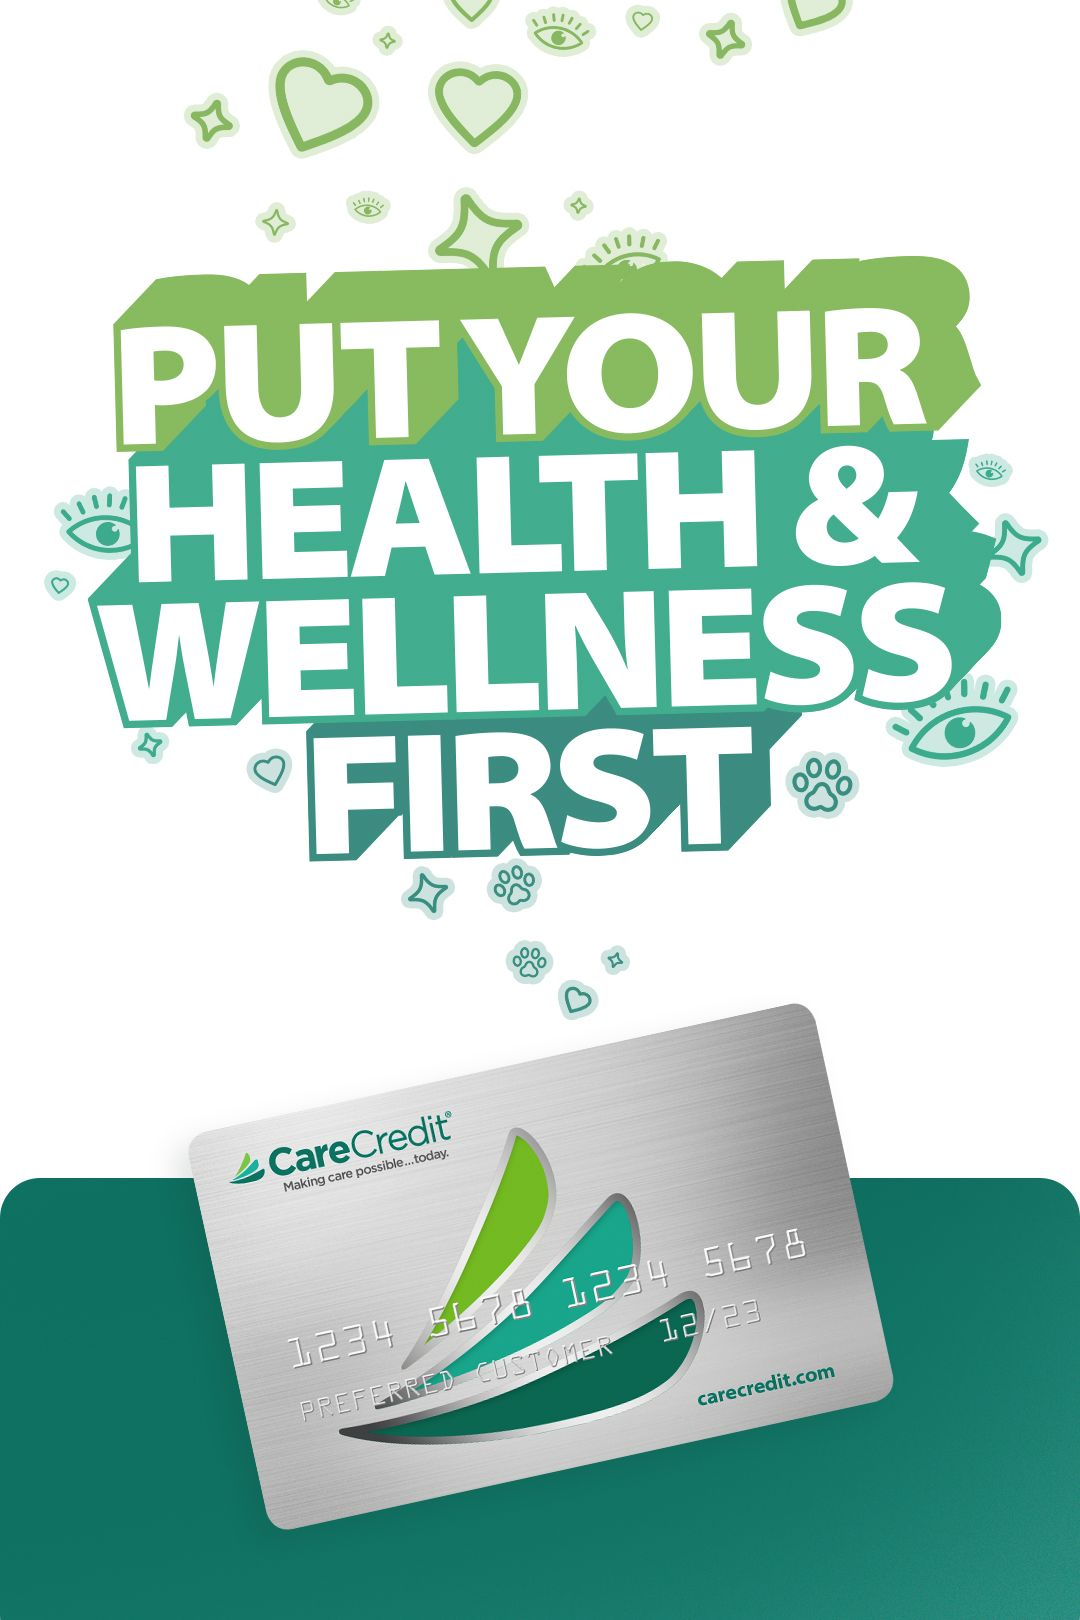 Go Ahead, Put Yourself First With This Dedicated Healthcare Card. Learn More Today.